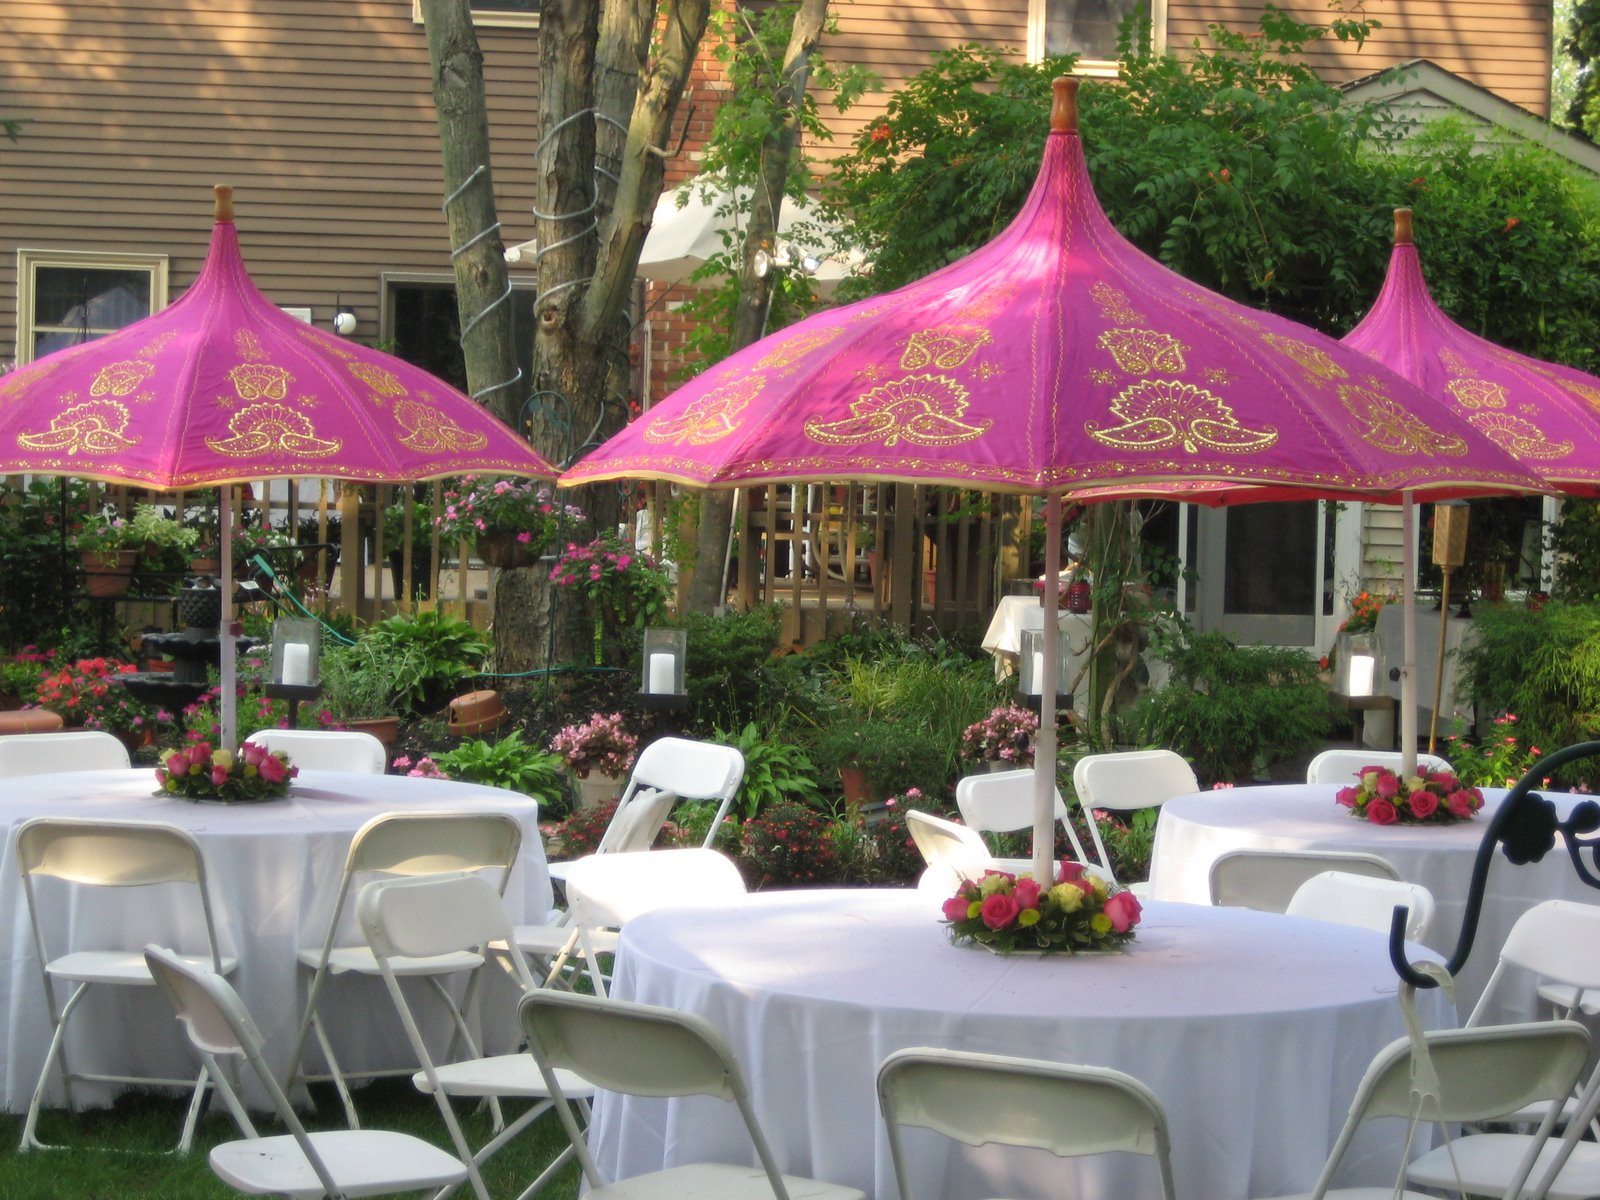 Unique Parasols with Rounded Table Surrounded by Chairs as a Simple Party Decoration Idea